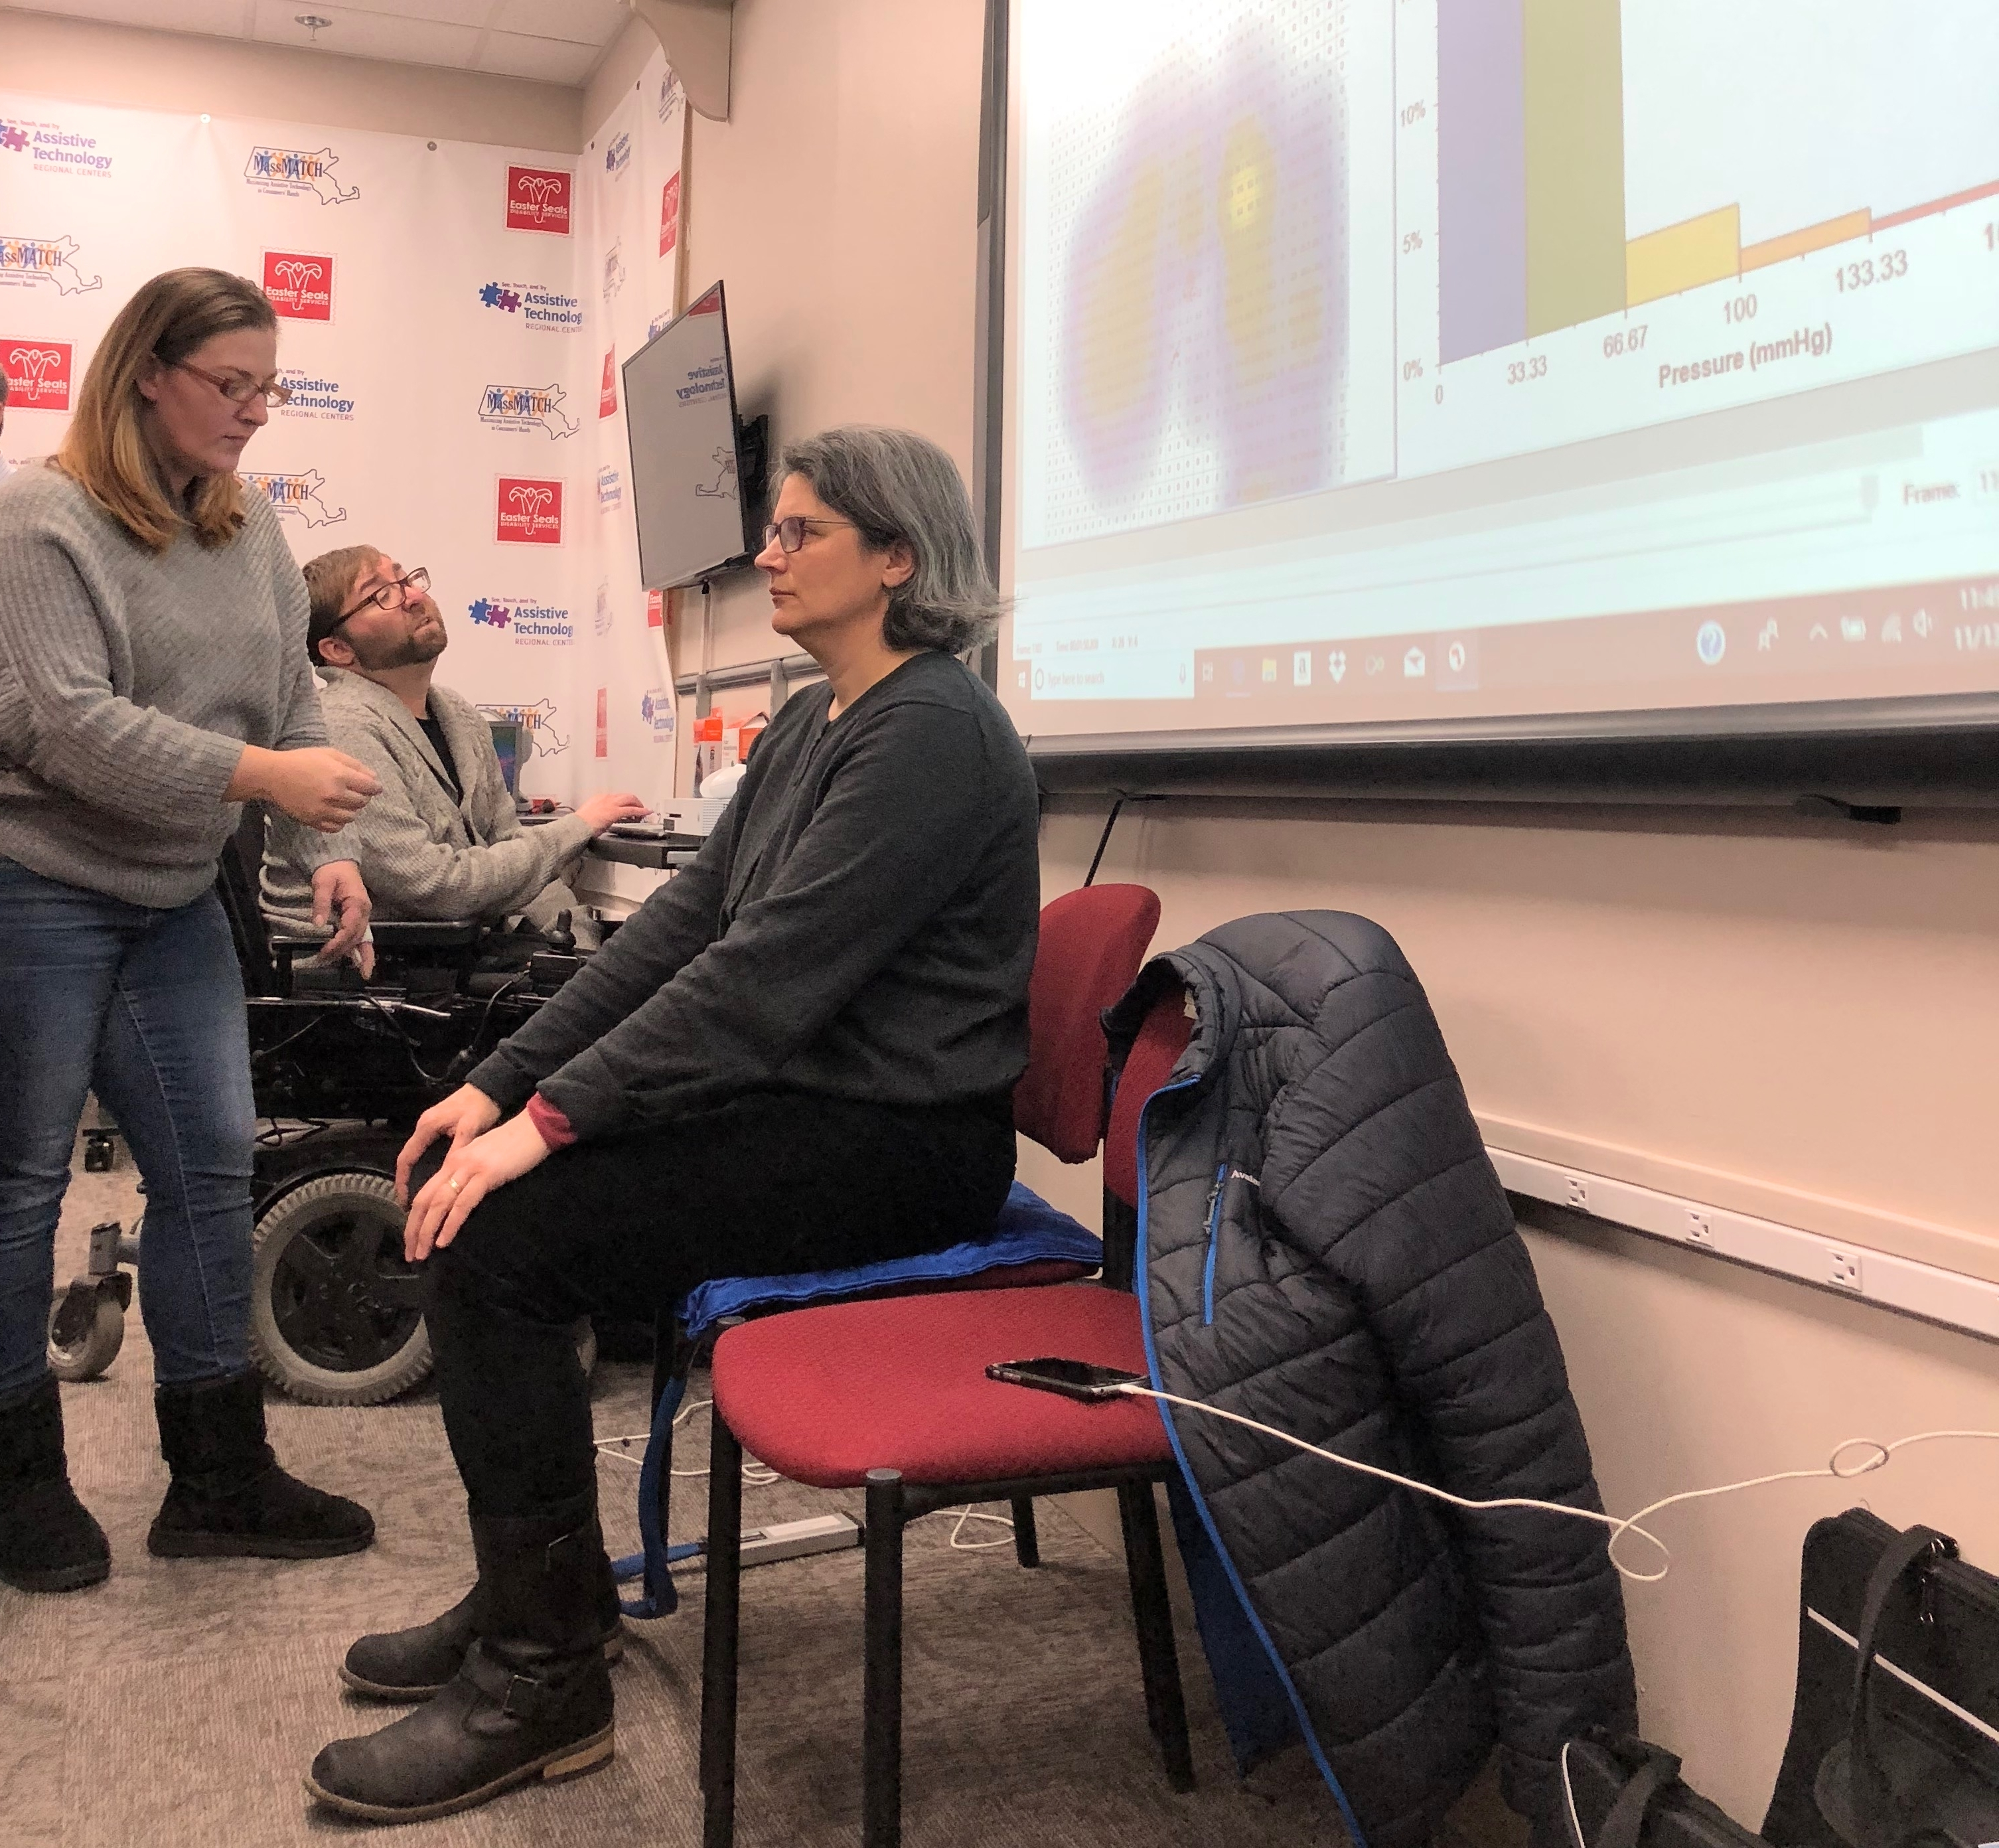 A woman seated on a pressure mapping system with a Smart Board displaying graphs. A man in a wheelchair in the background and another woman standing, helping operate the equipment.